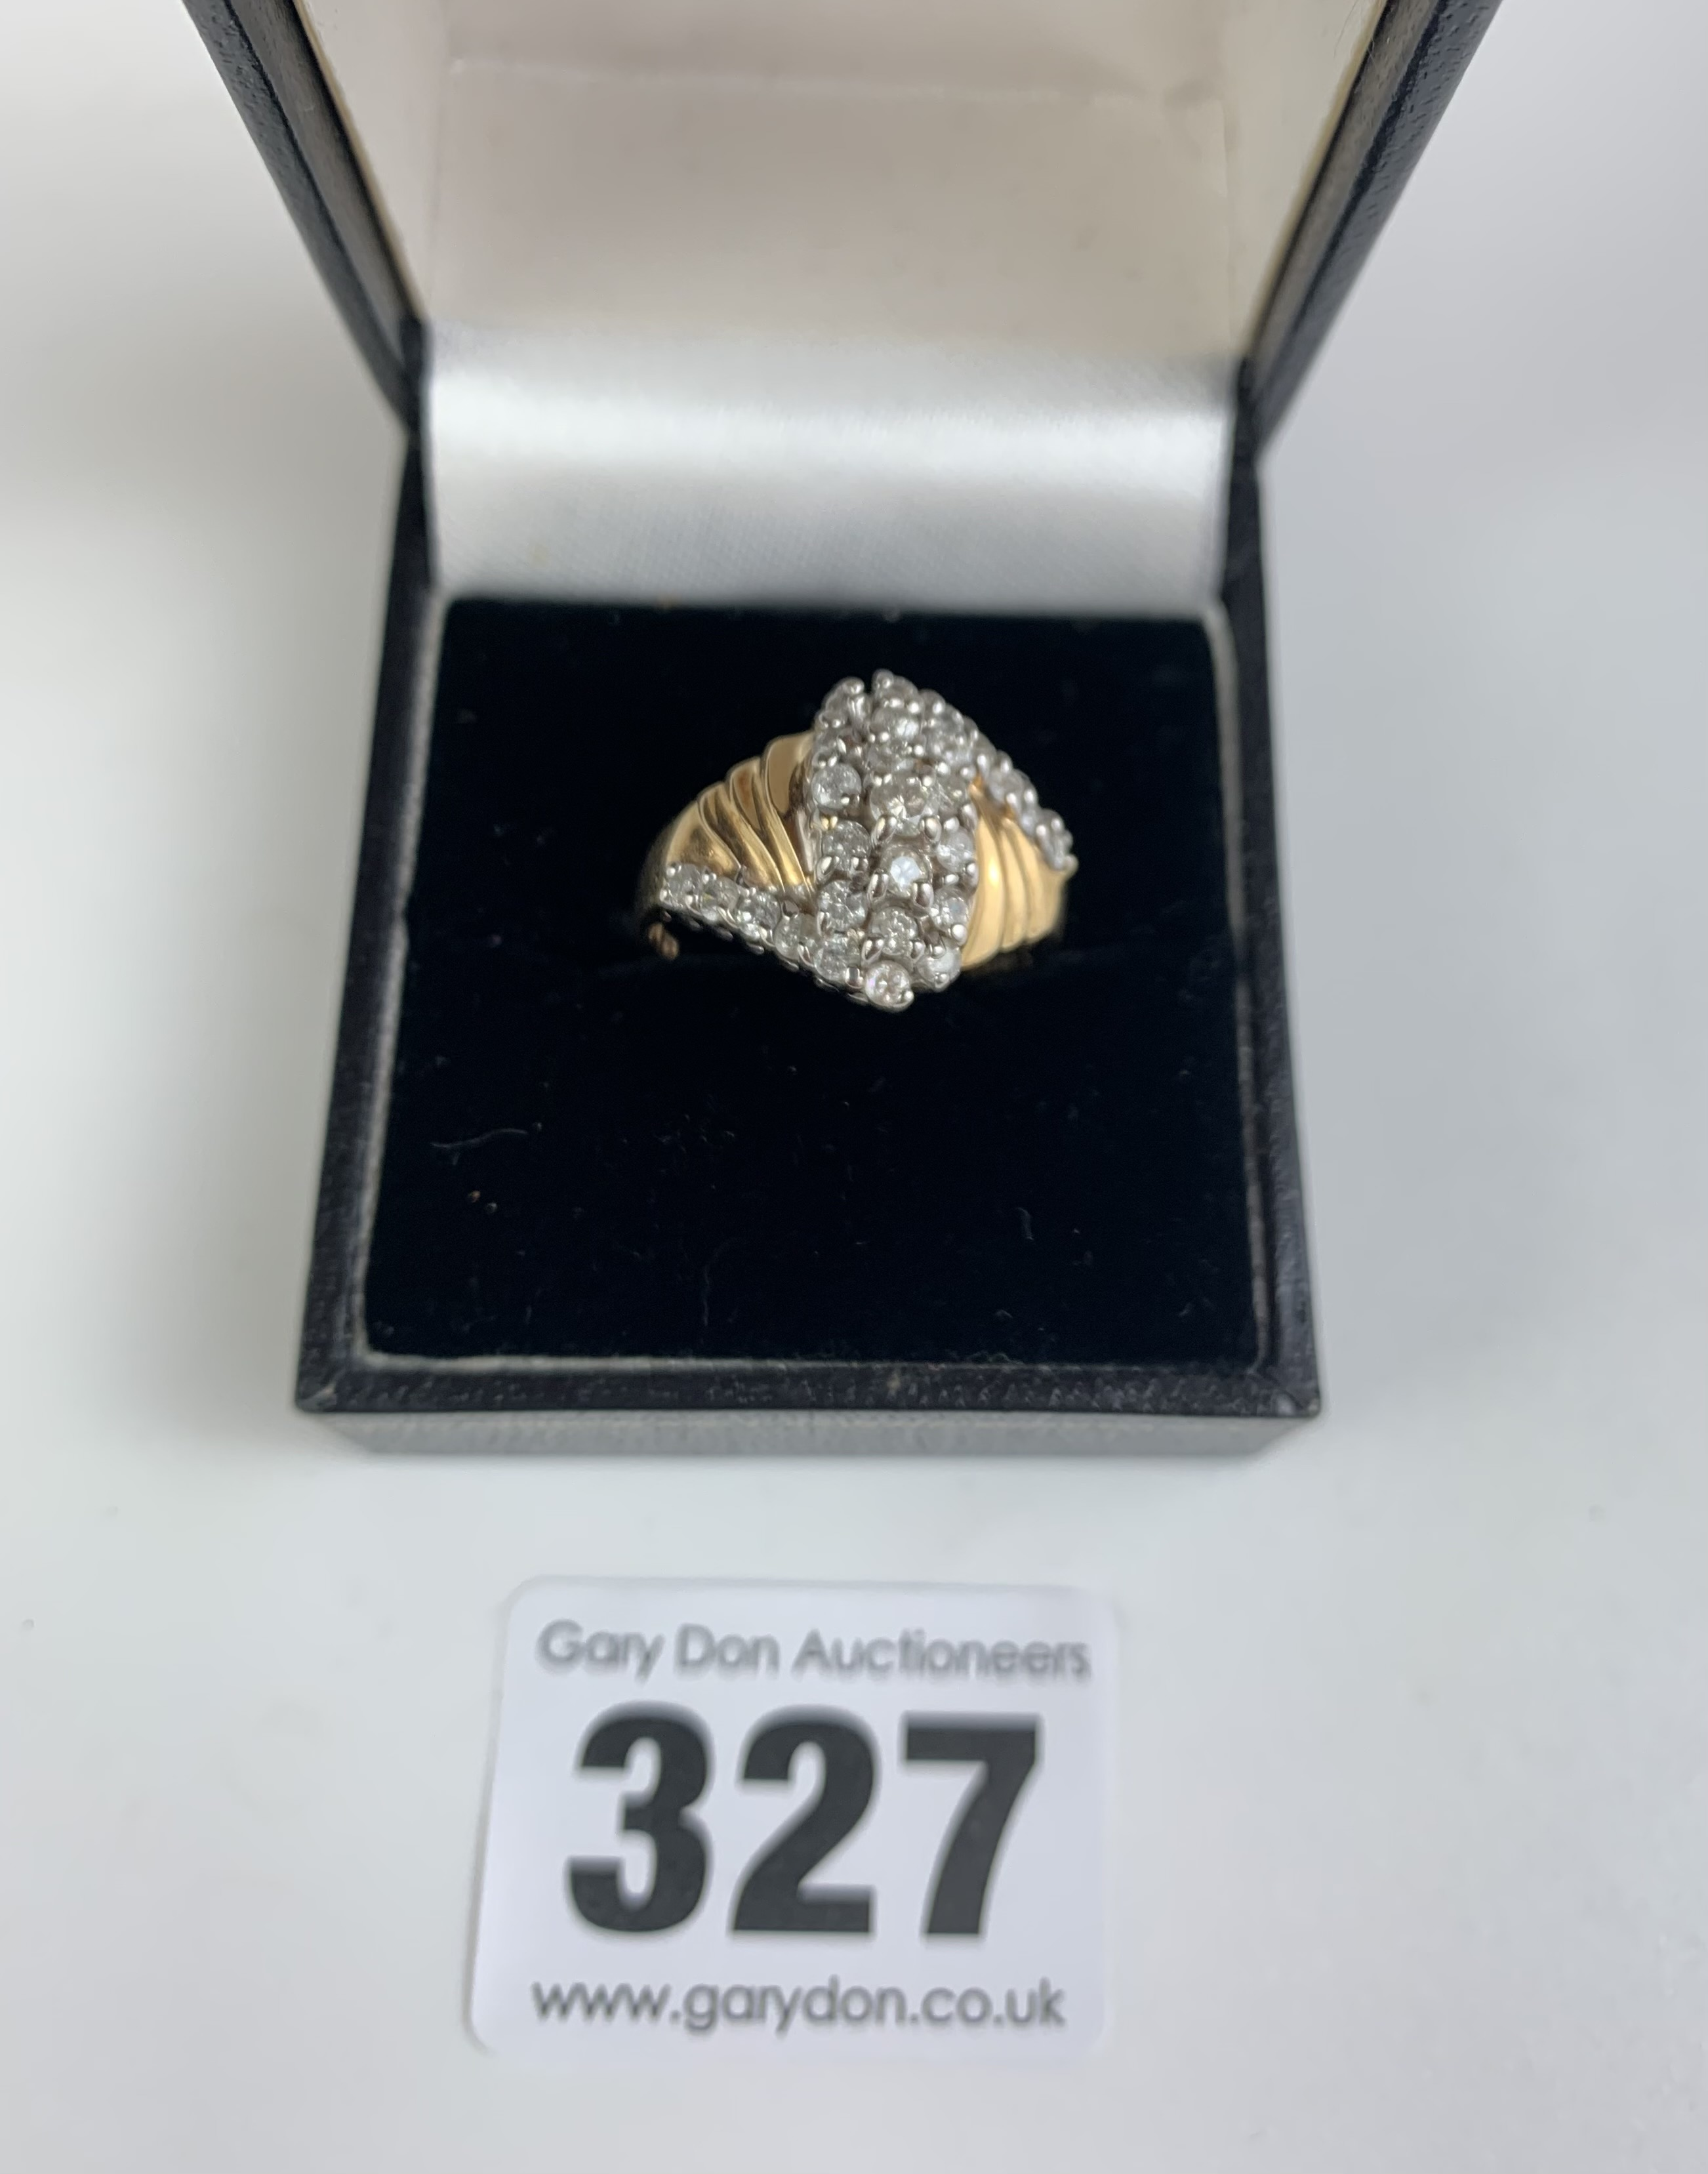 14k gold and white stone dress ring, size P/Q, w: 4.3 gms